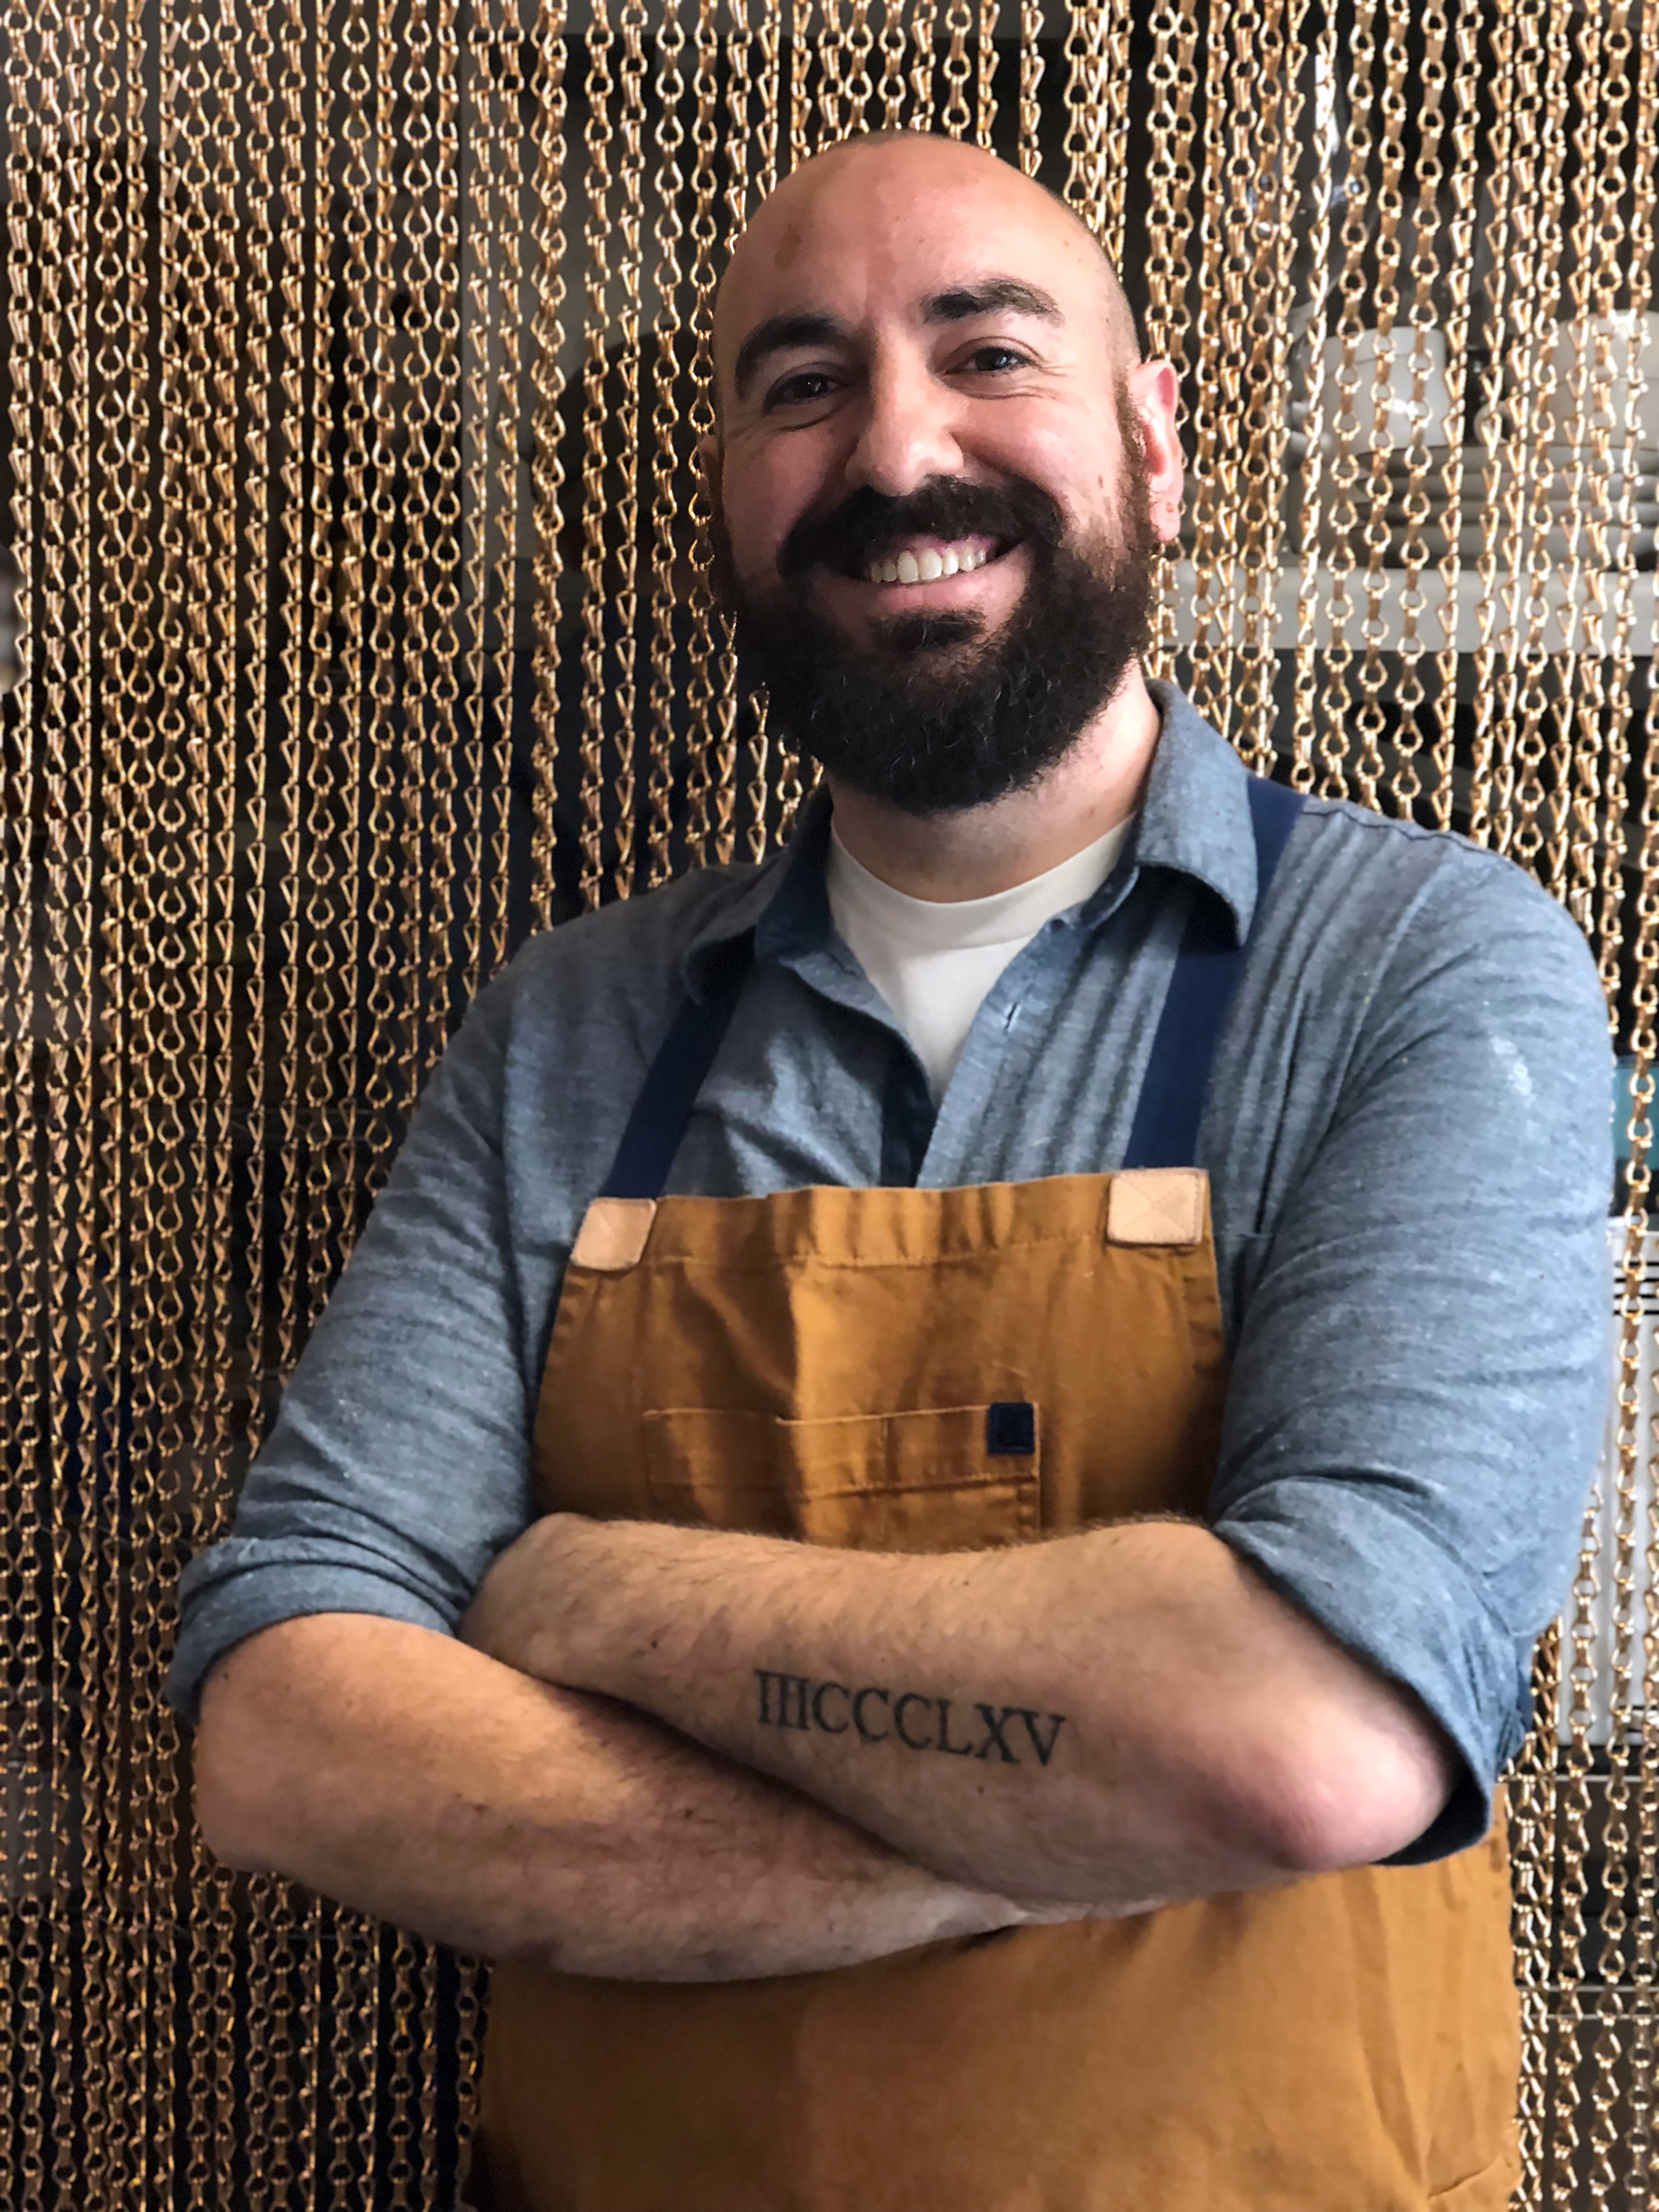 Executive Chef/Proprietor Ryan Shelton shows his recently acquired tattoo that is the address of Merchant Roots in Roman numerals.